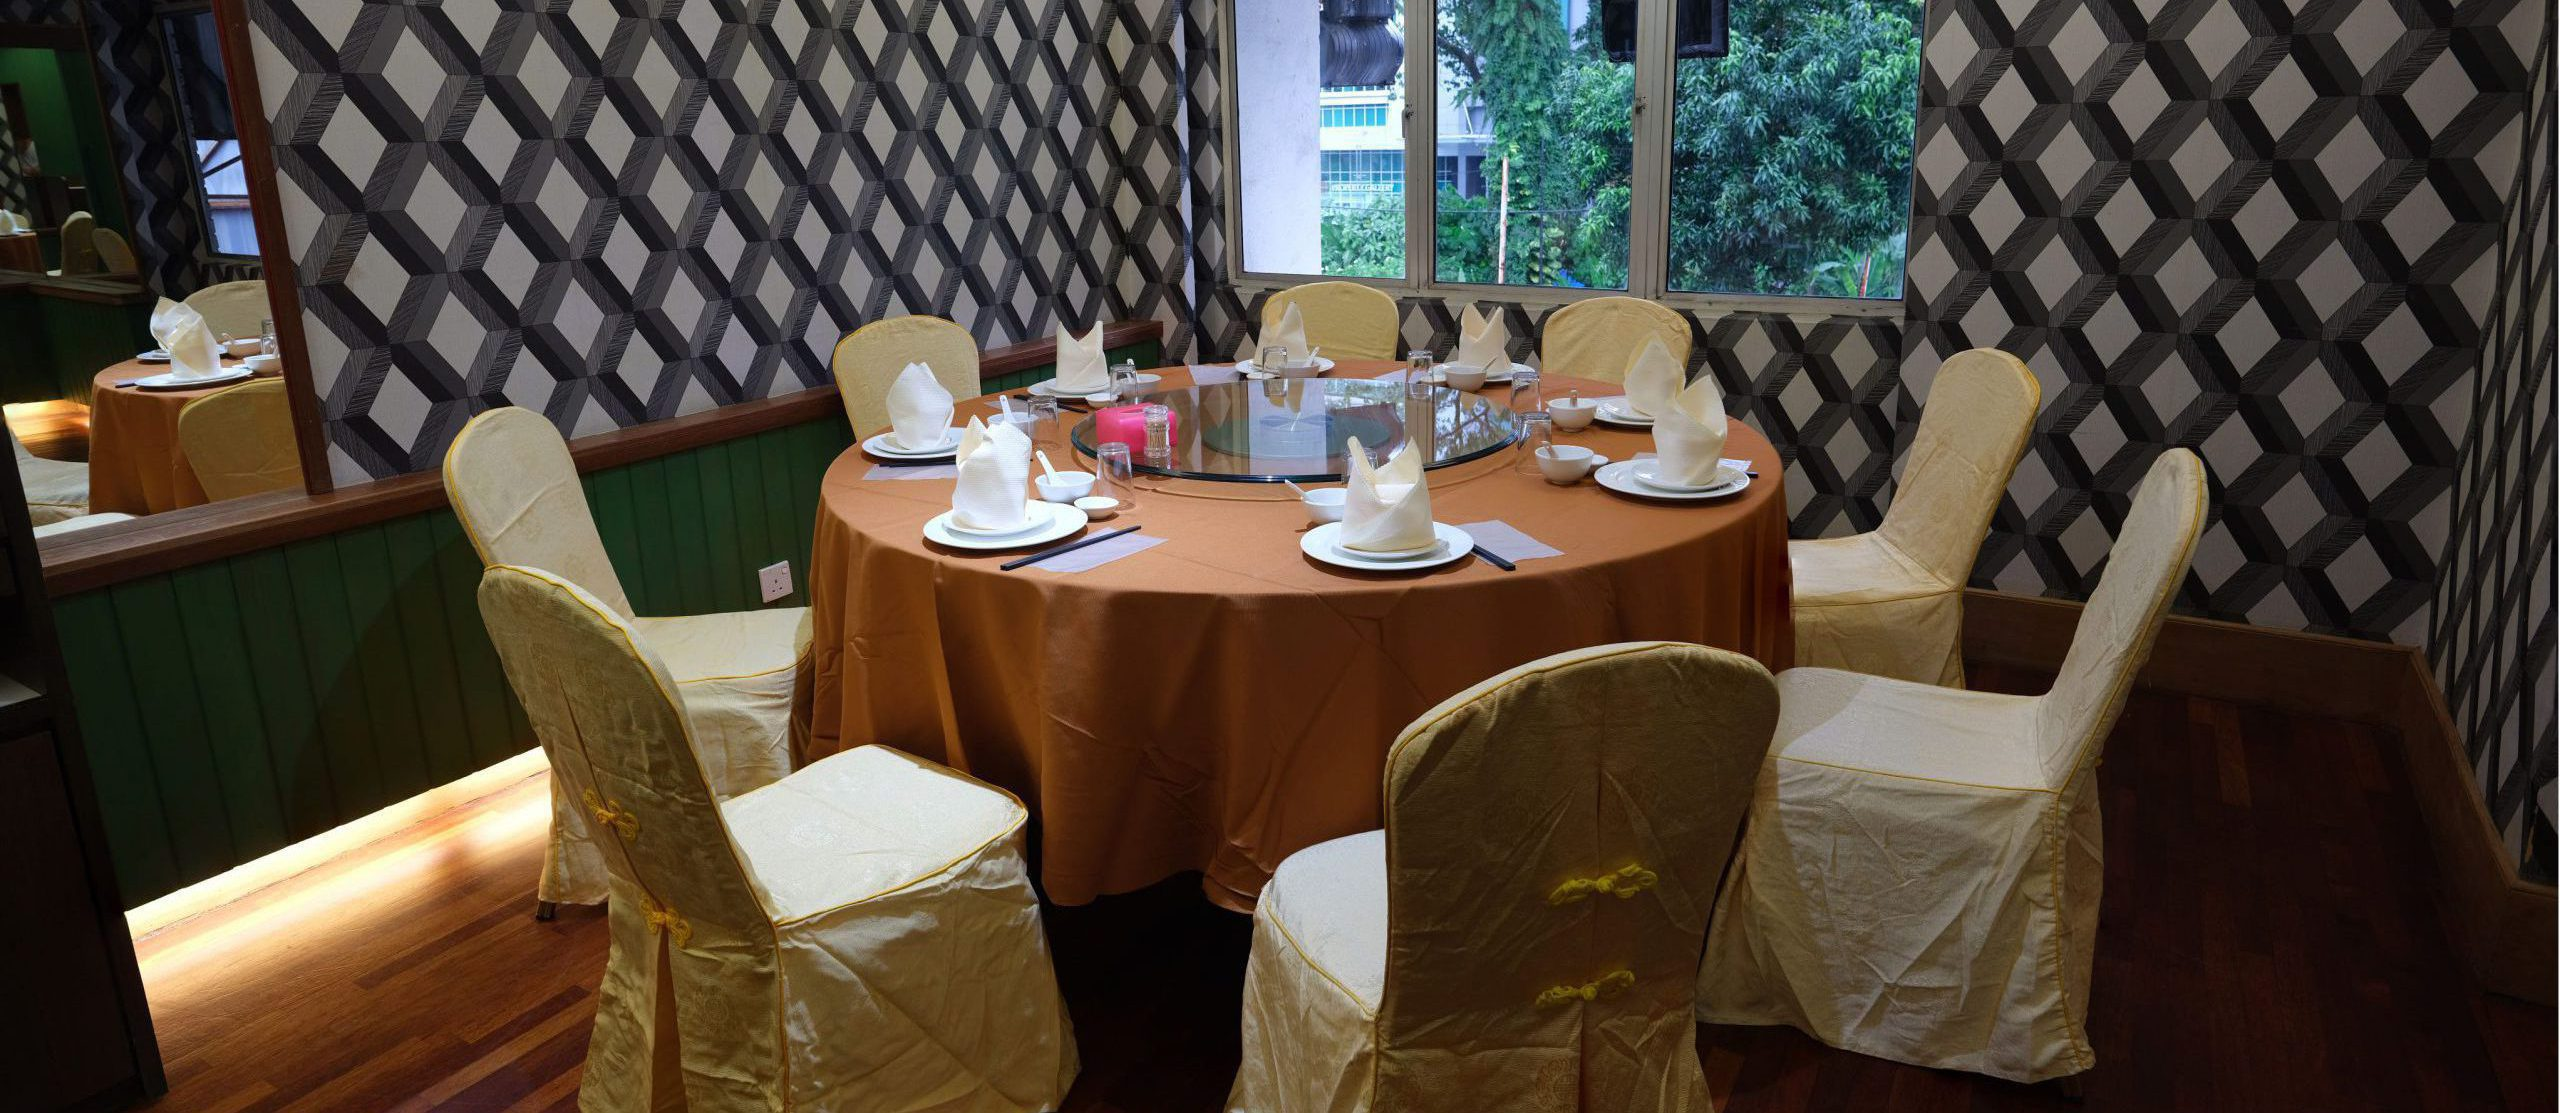 Chinese Restaurant in PJ in Private Dining Rooms